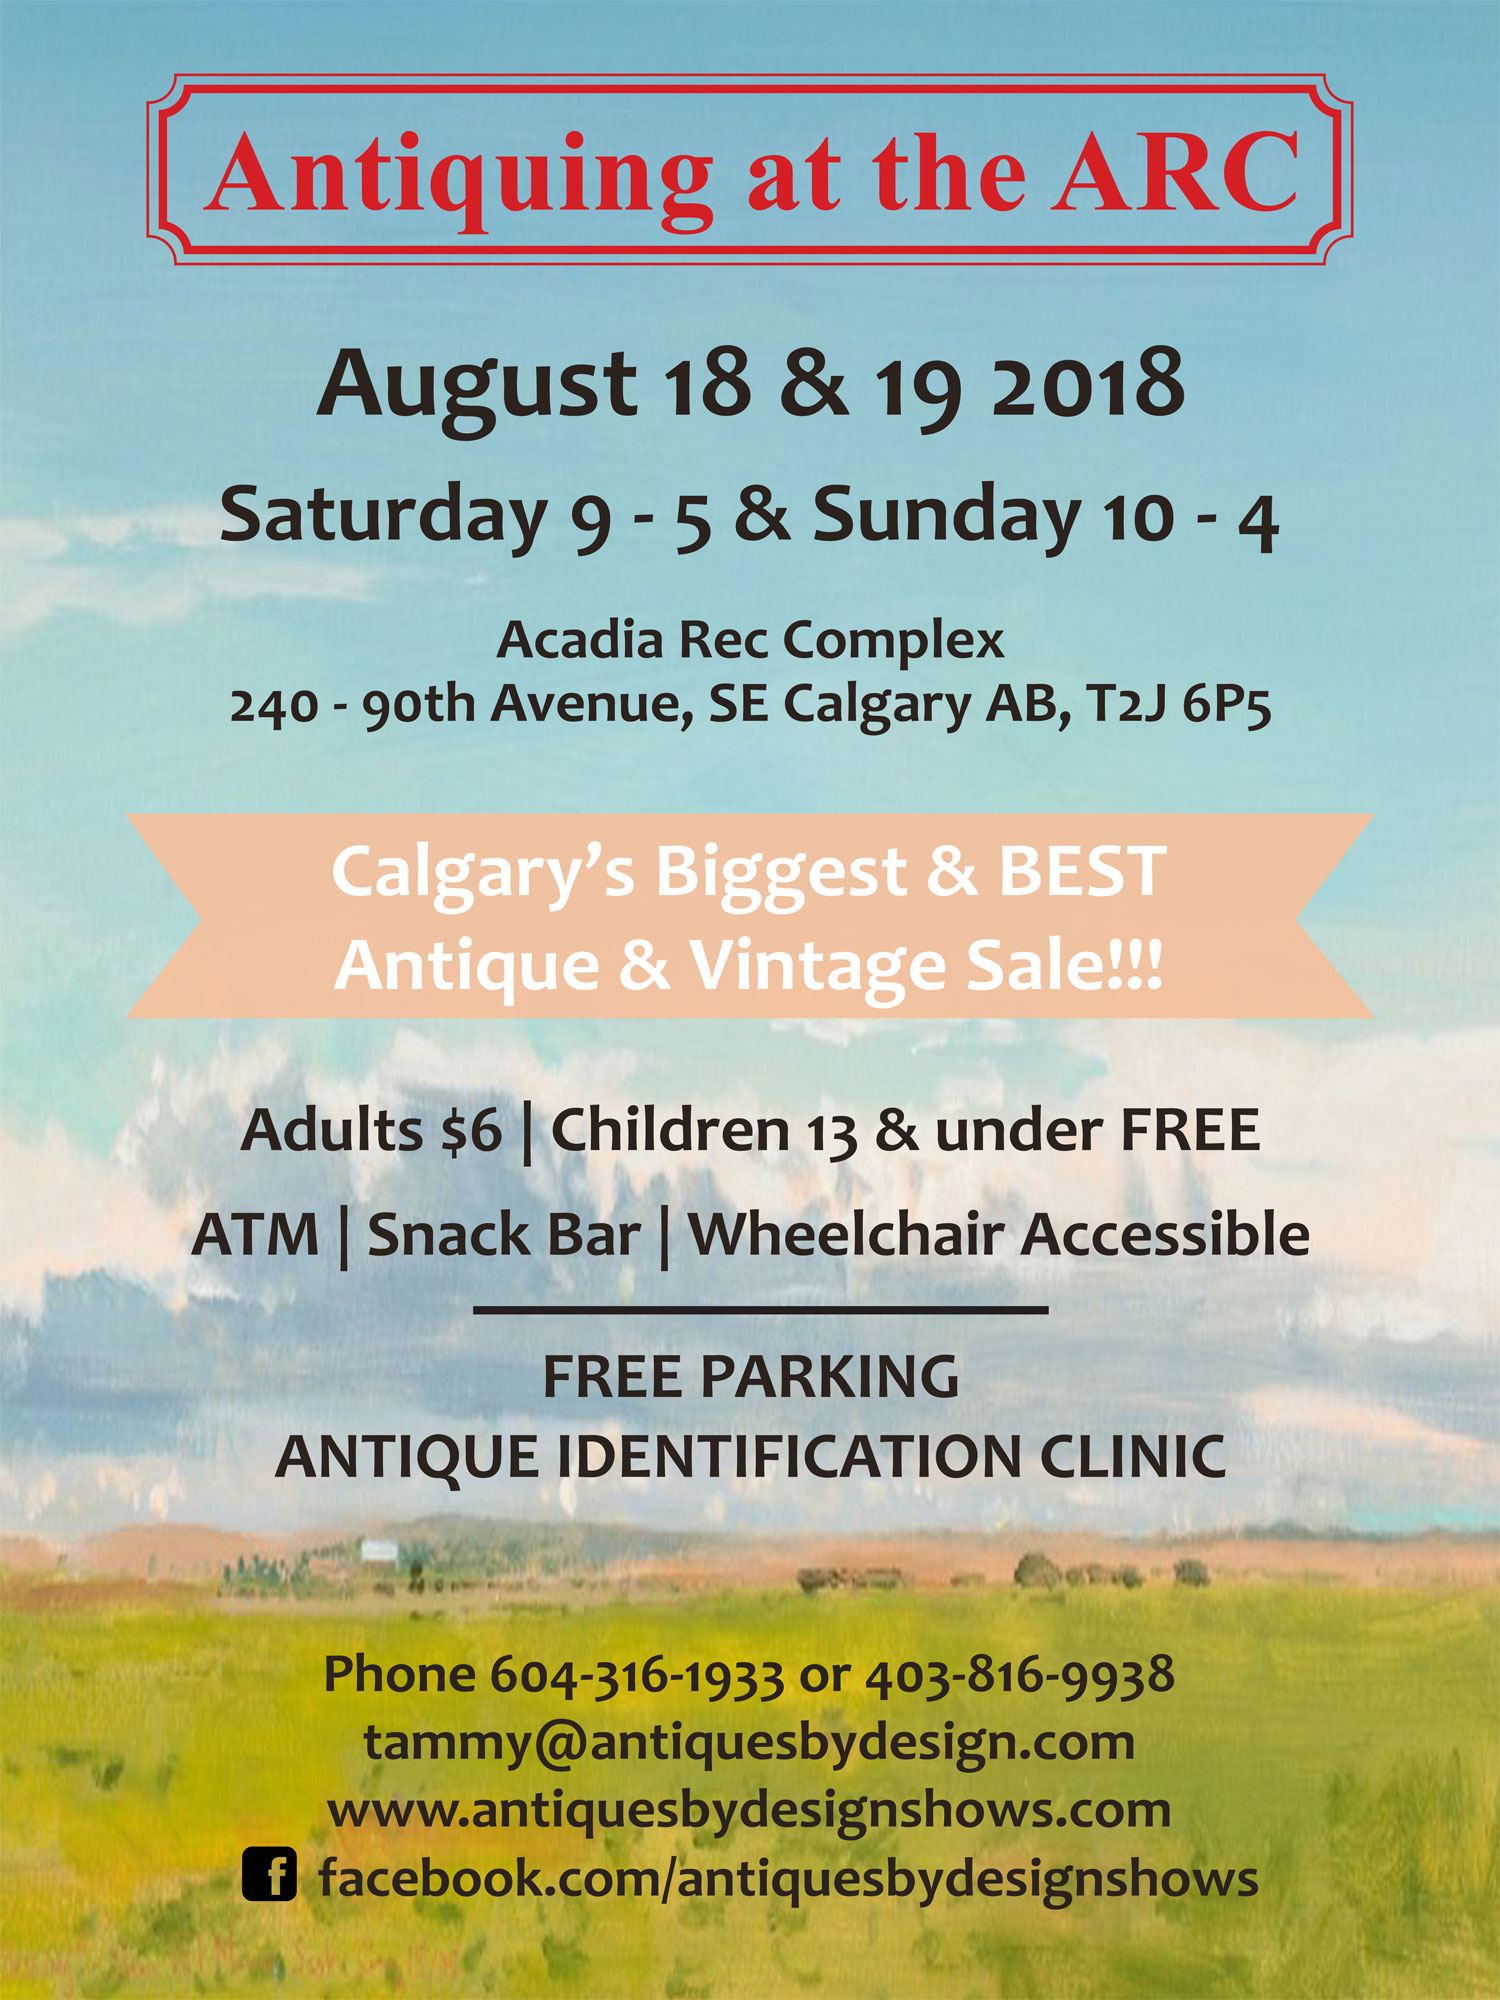 Categories : ANTIQUES events